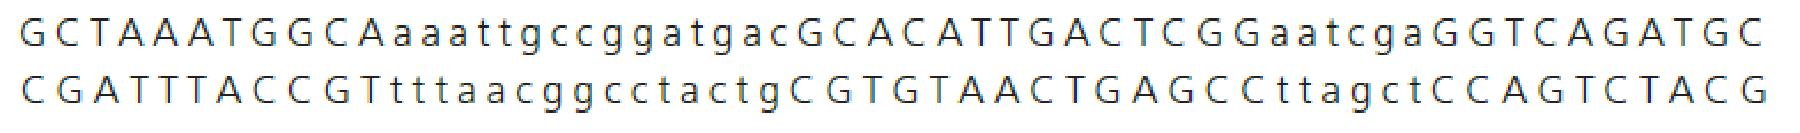 Chapter 9, Problem 8QP, The following segment of DNA codes for a protein. The uppercase letters represent exons. The